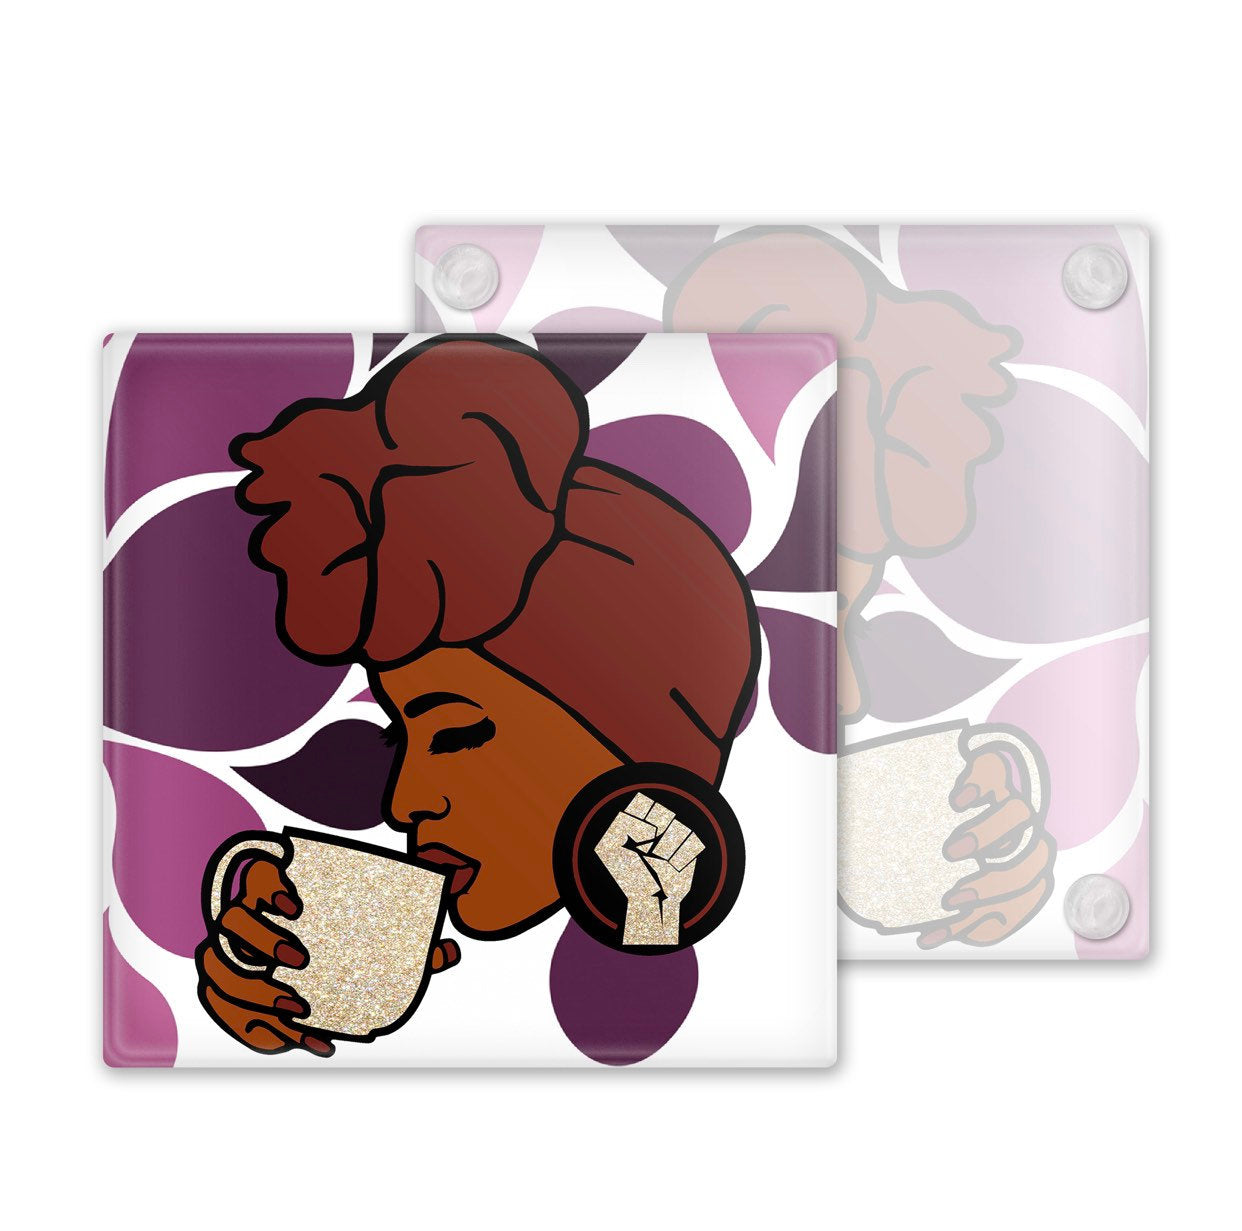 Afrocentric Woman In Head Wrap Glass Coasters, Set of 4